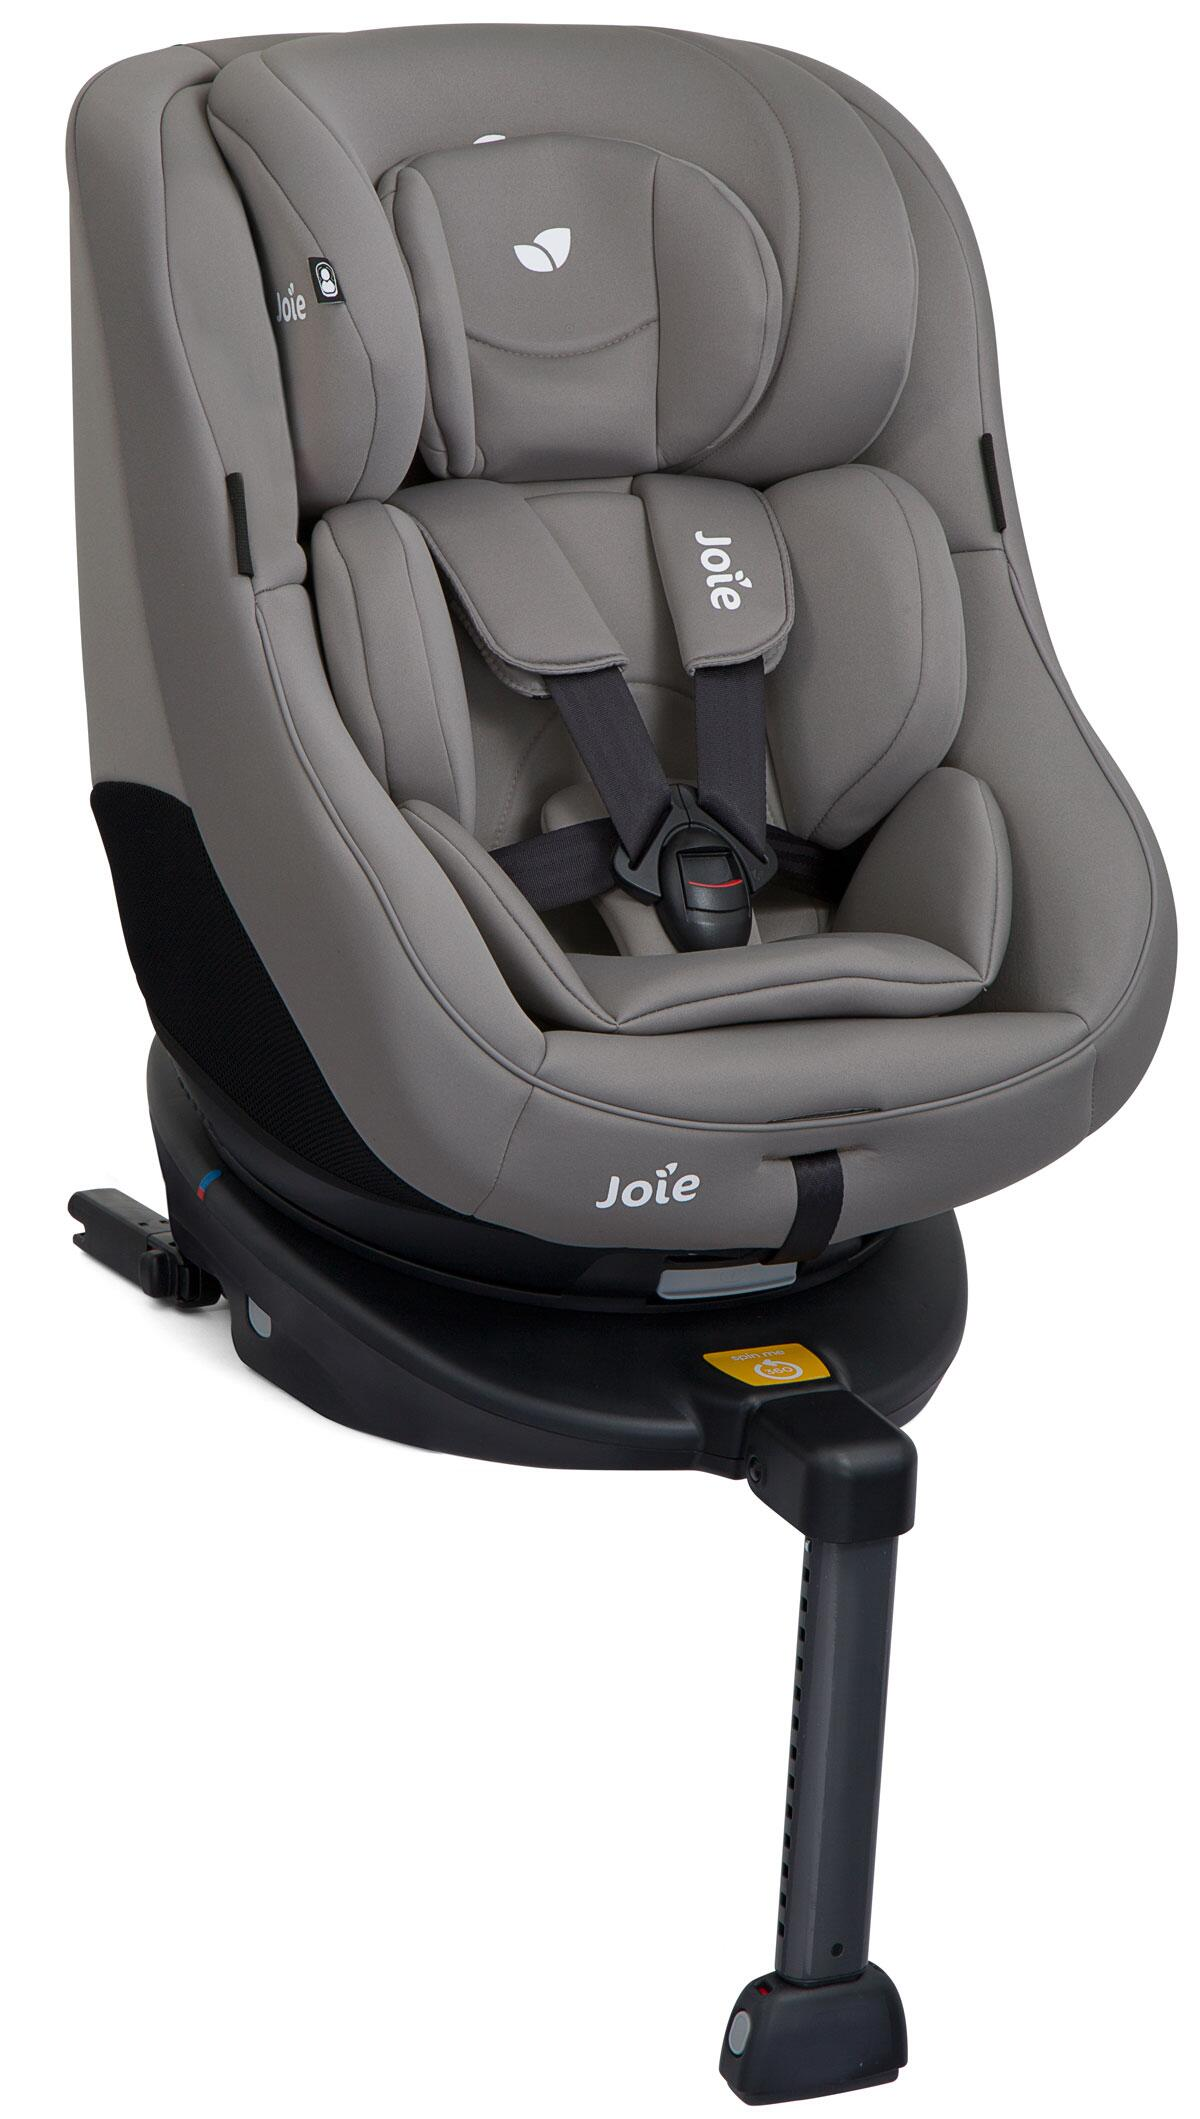 spin 360 joie car seat 2333 9